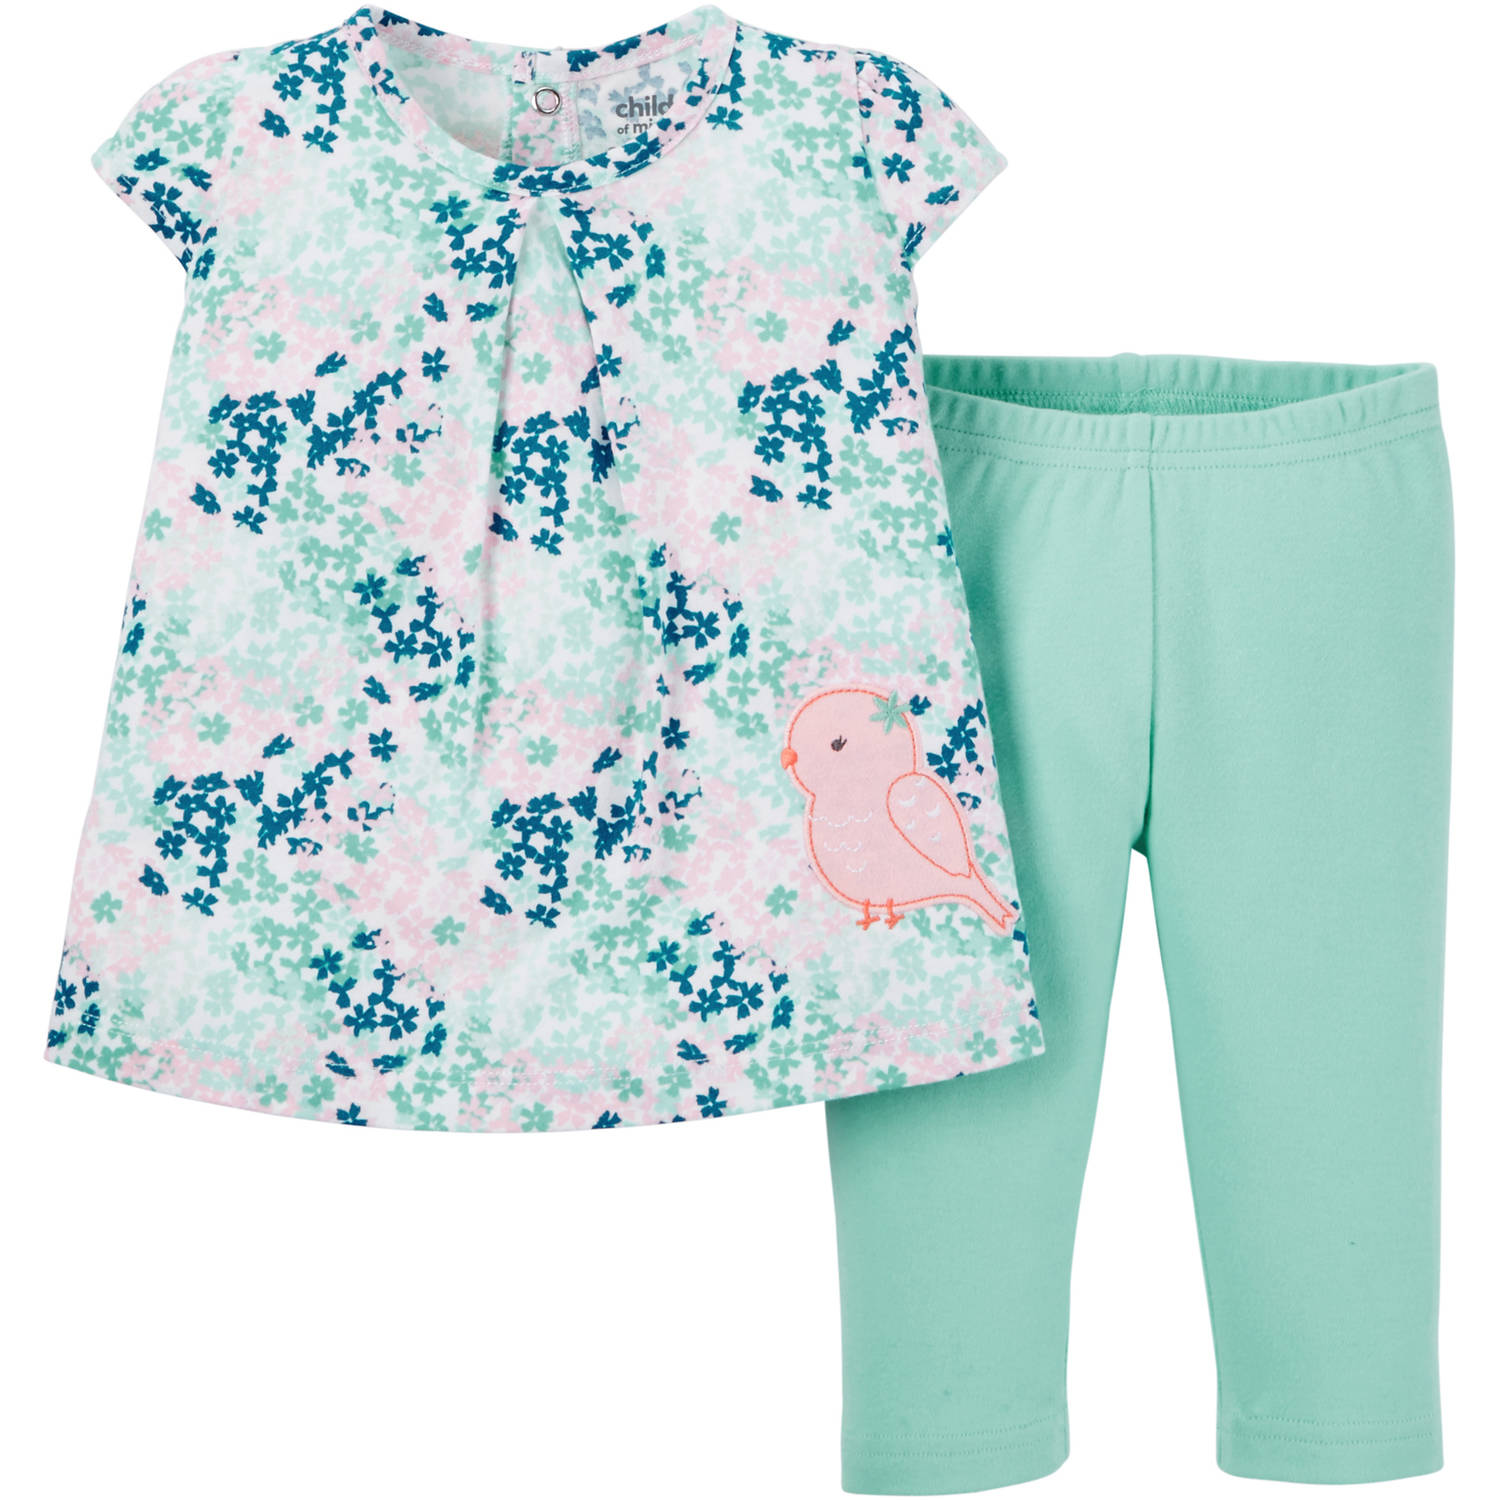 Child of Mine made by Carter's Newborn Baby Girls' Top and Pant Outfit Set 2 Pieces